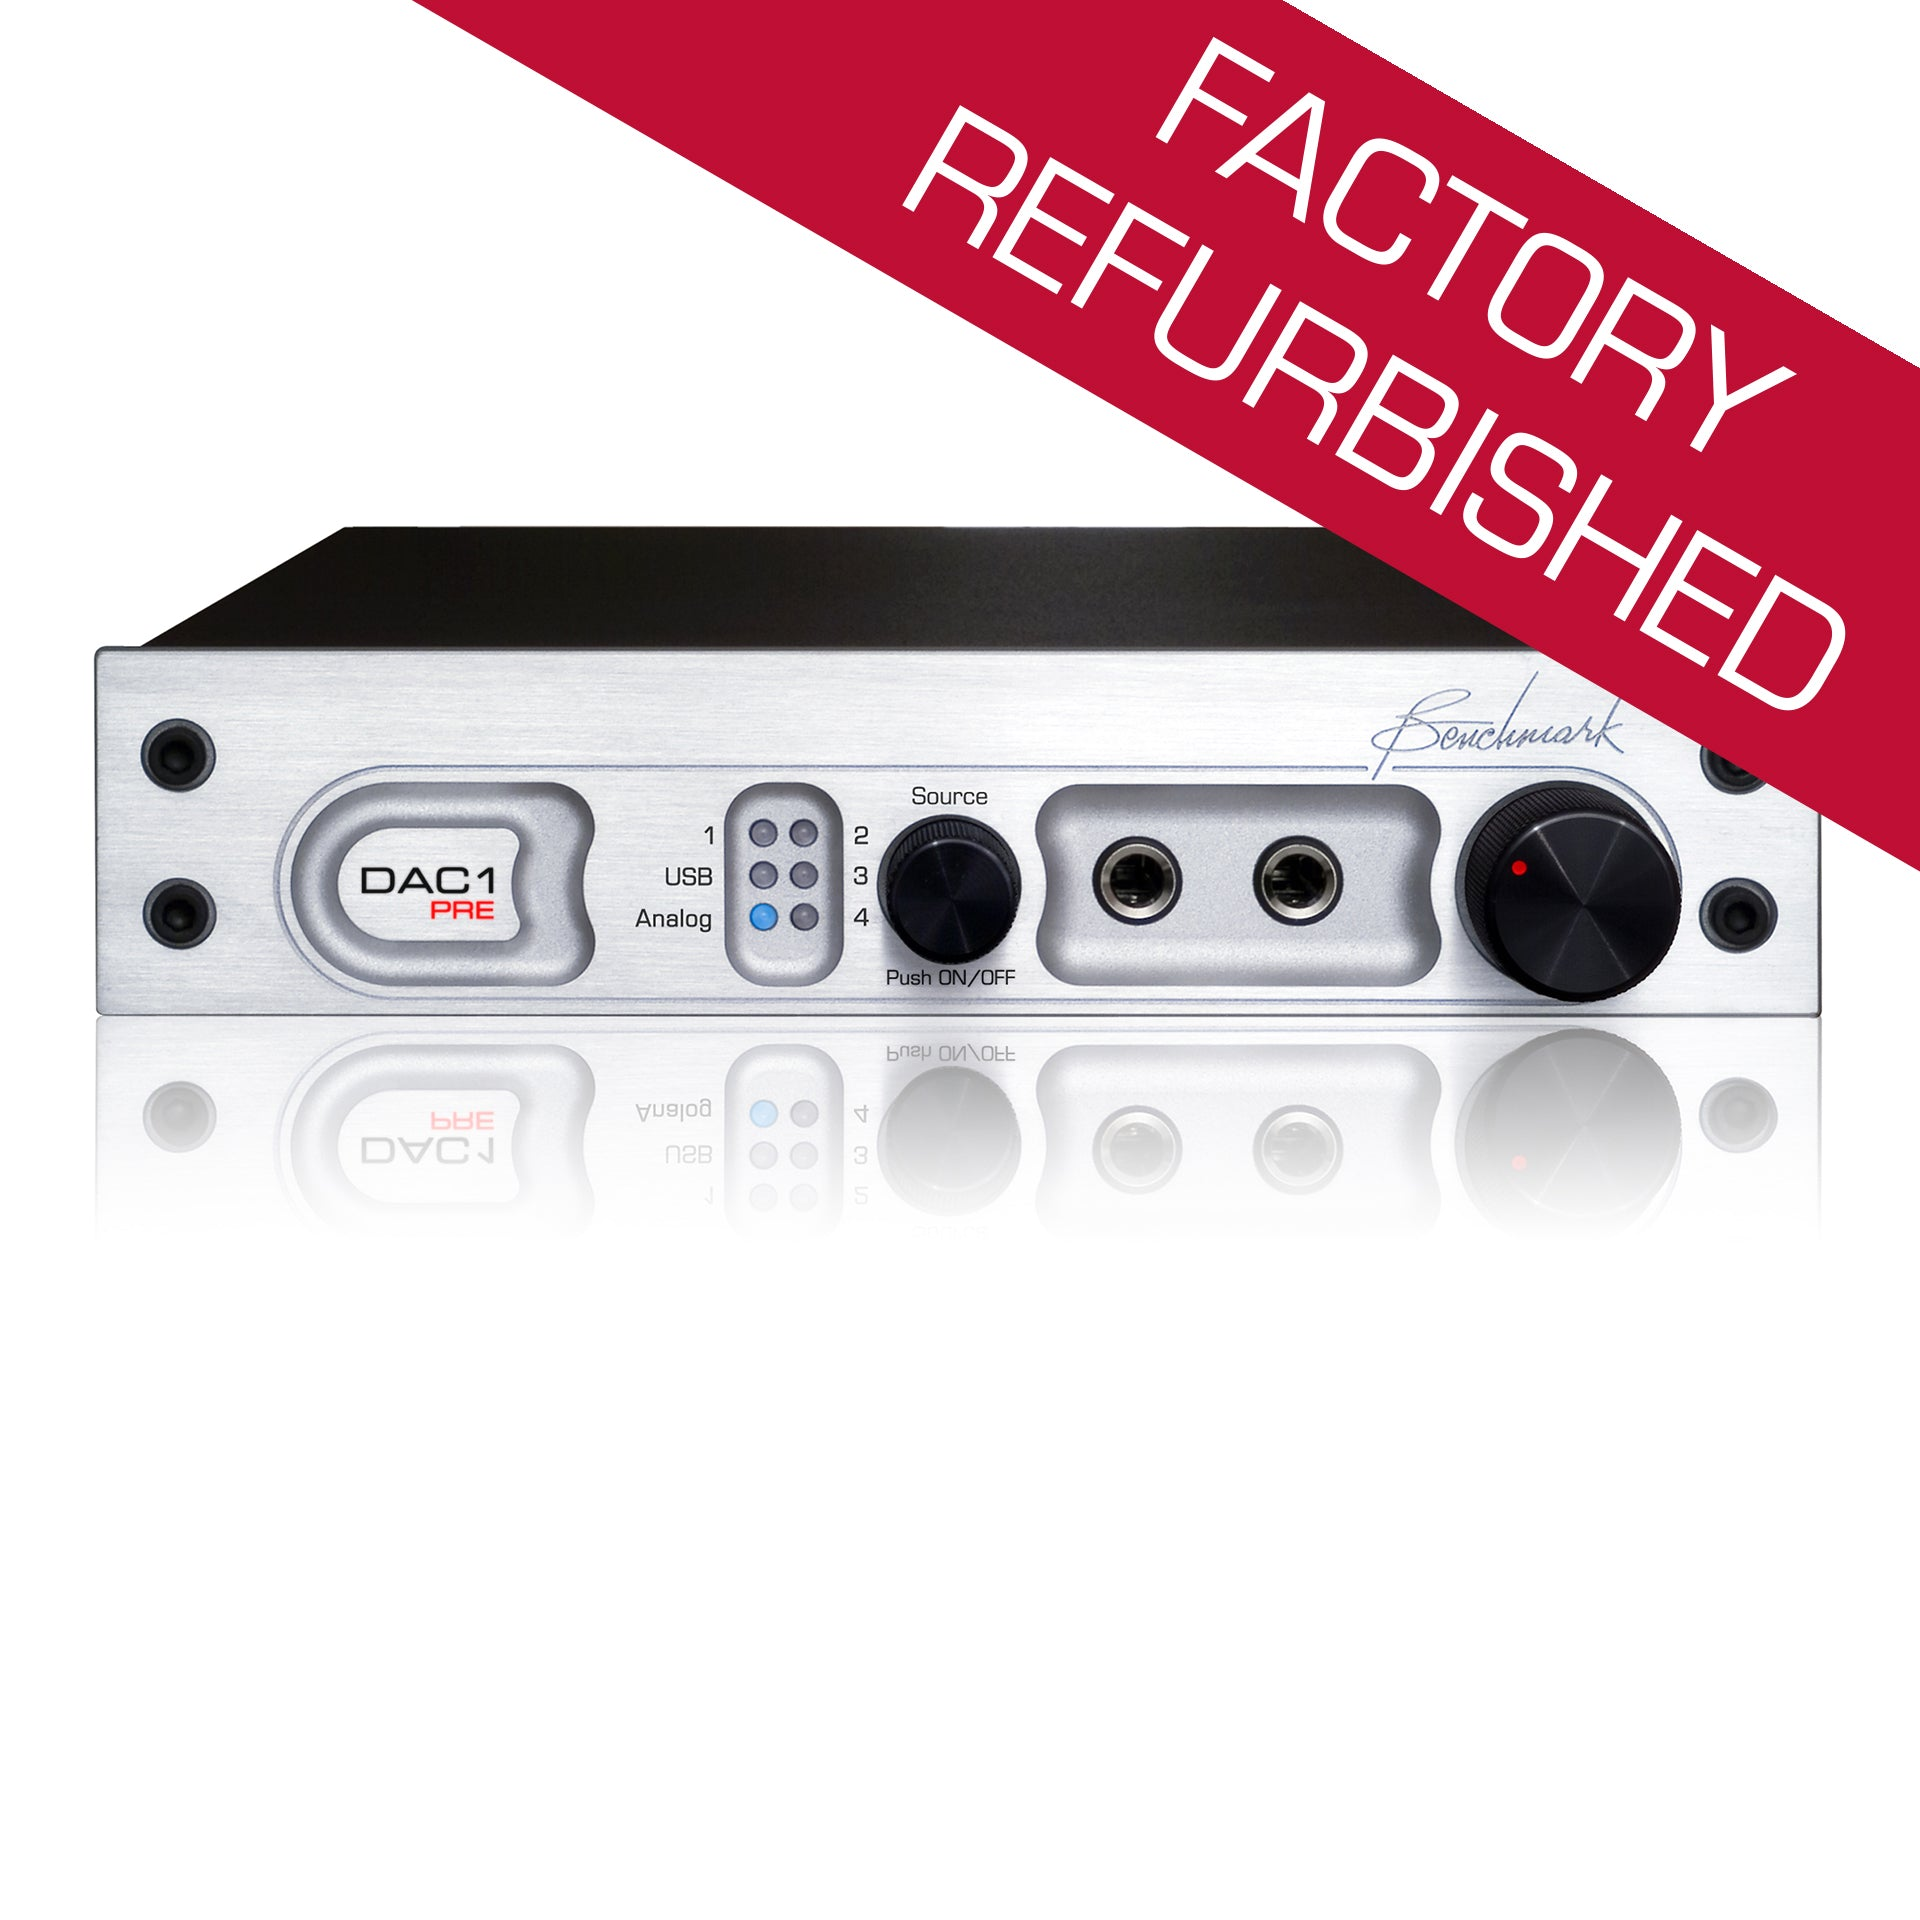 Benchmark DAC1 PRE - Digital to Analog Converter - Factory Refurbished